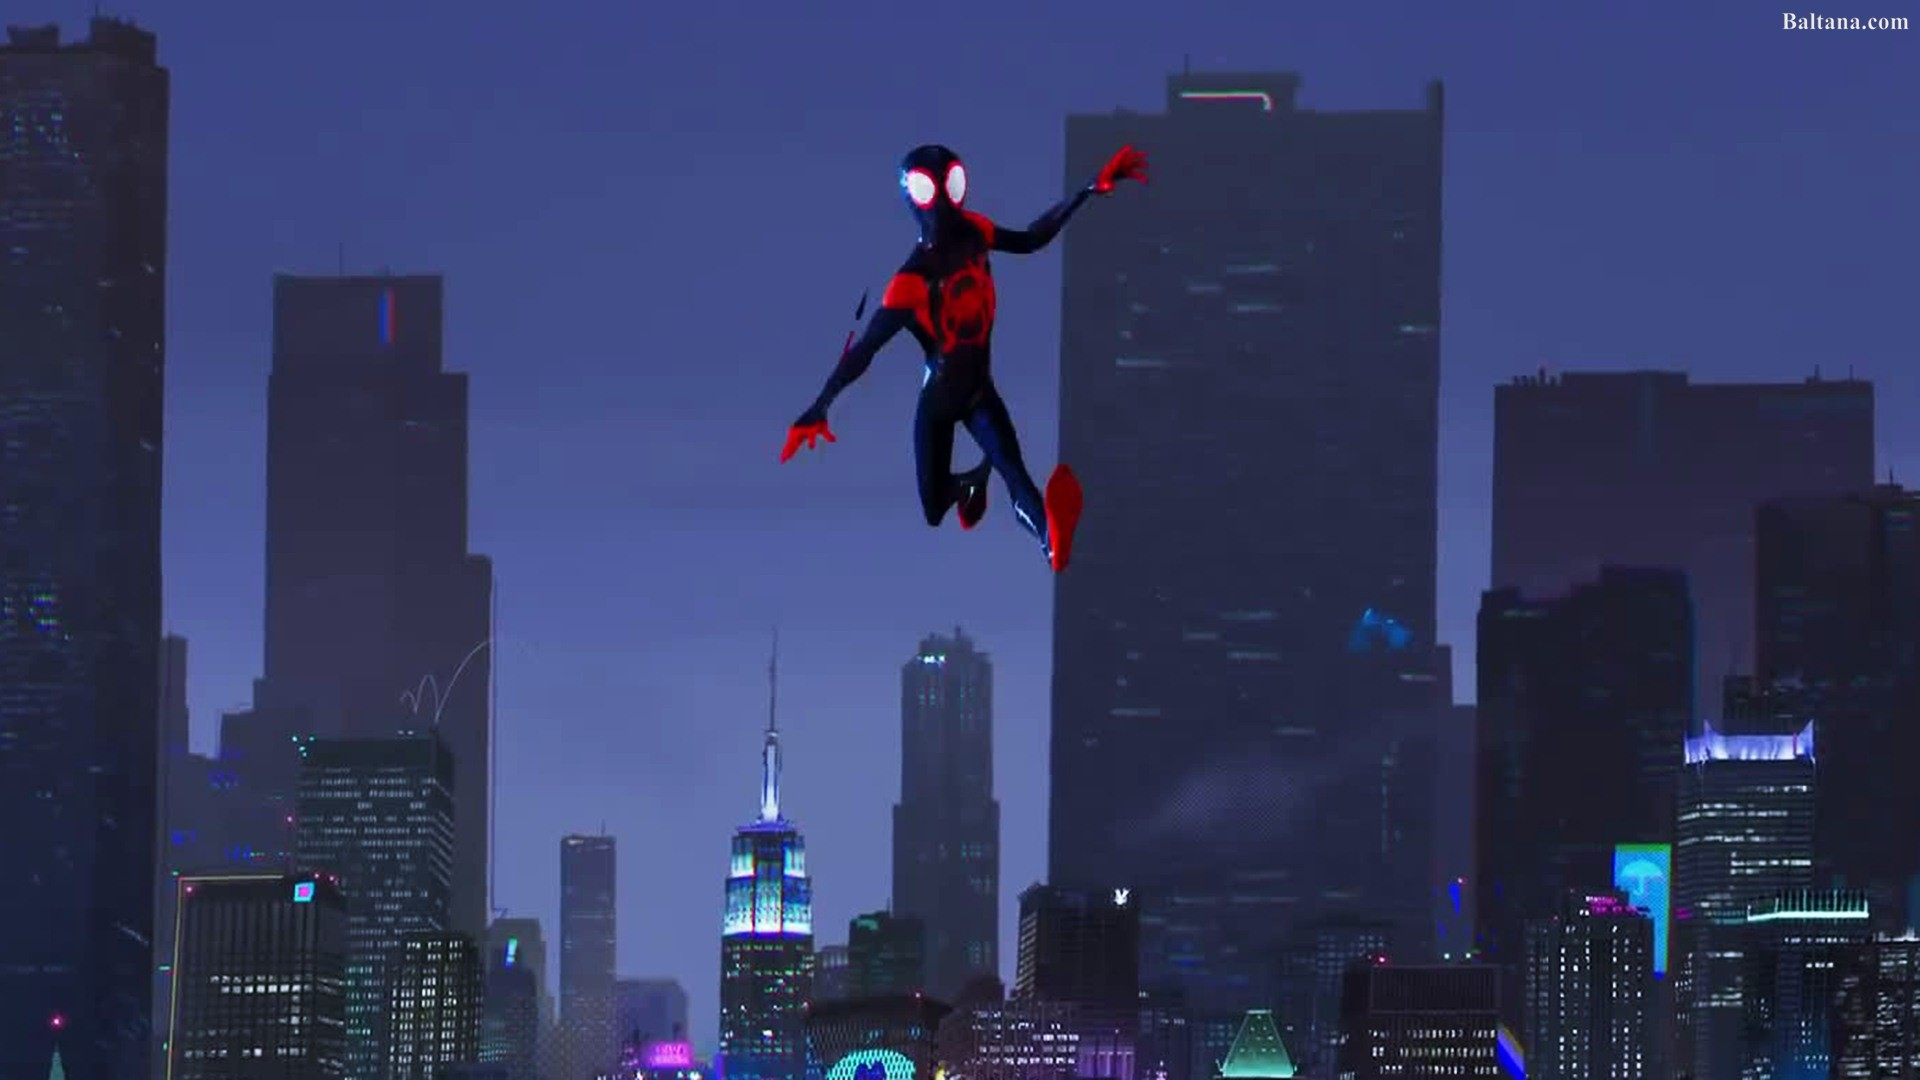 Spiderman Into The Spider Verse Animated Movie Hq Desktop Spider Man Into The Spider Verse Moving 1920x1080 Download Hd Wallpaper Wallpapertip